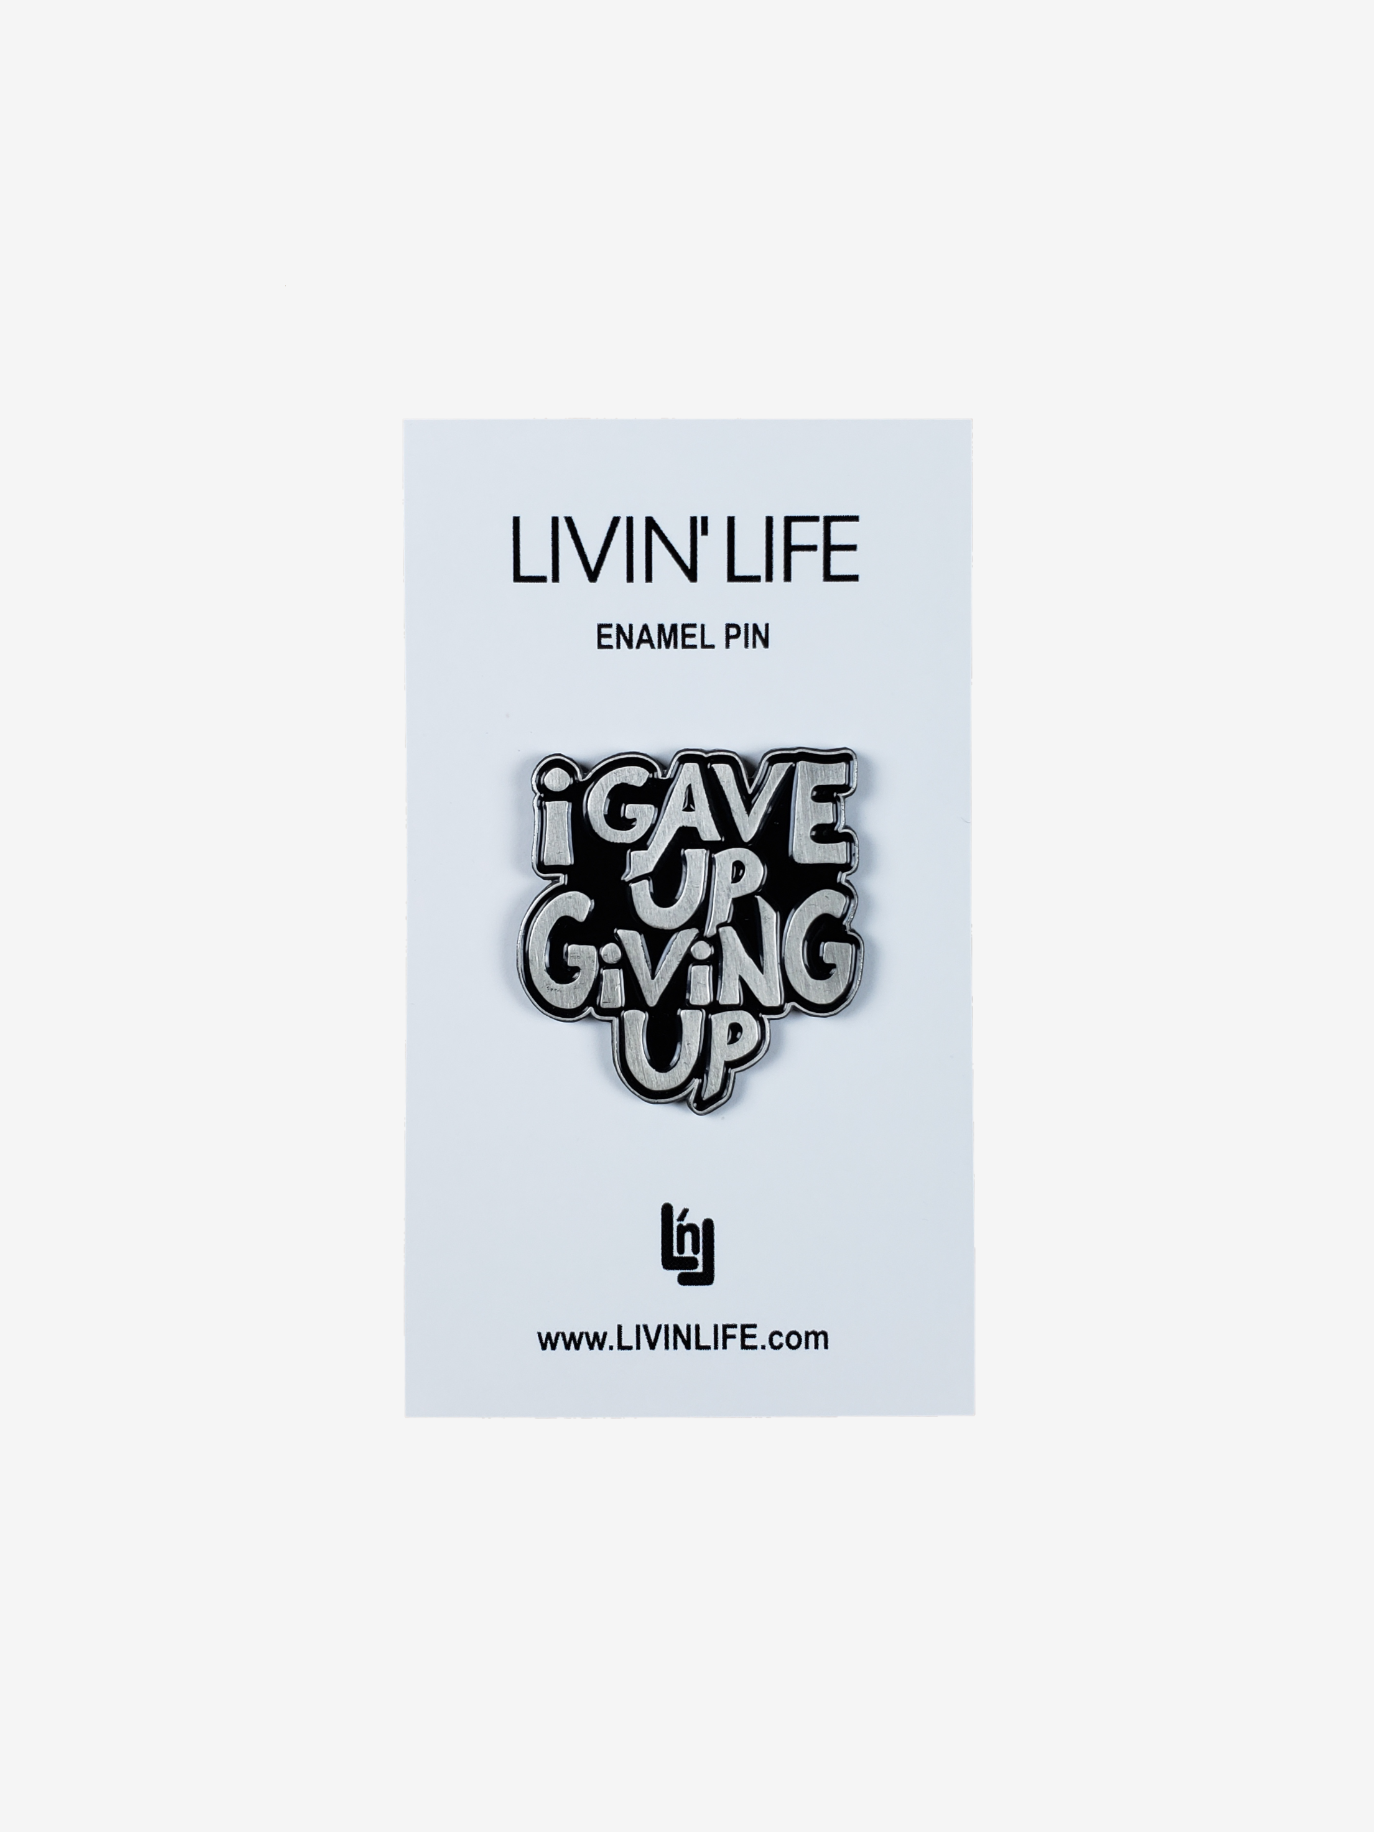 I Gave Up Giving Up® Enamel Pin